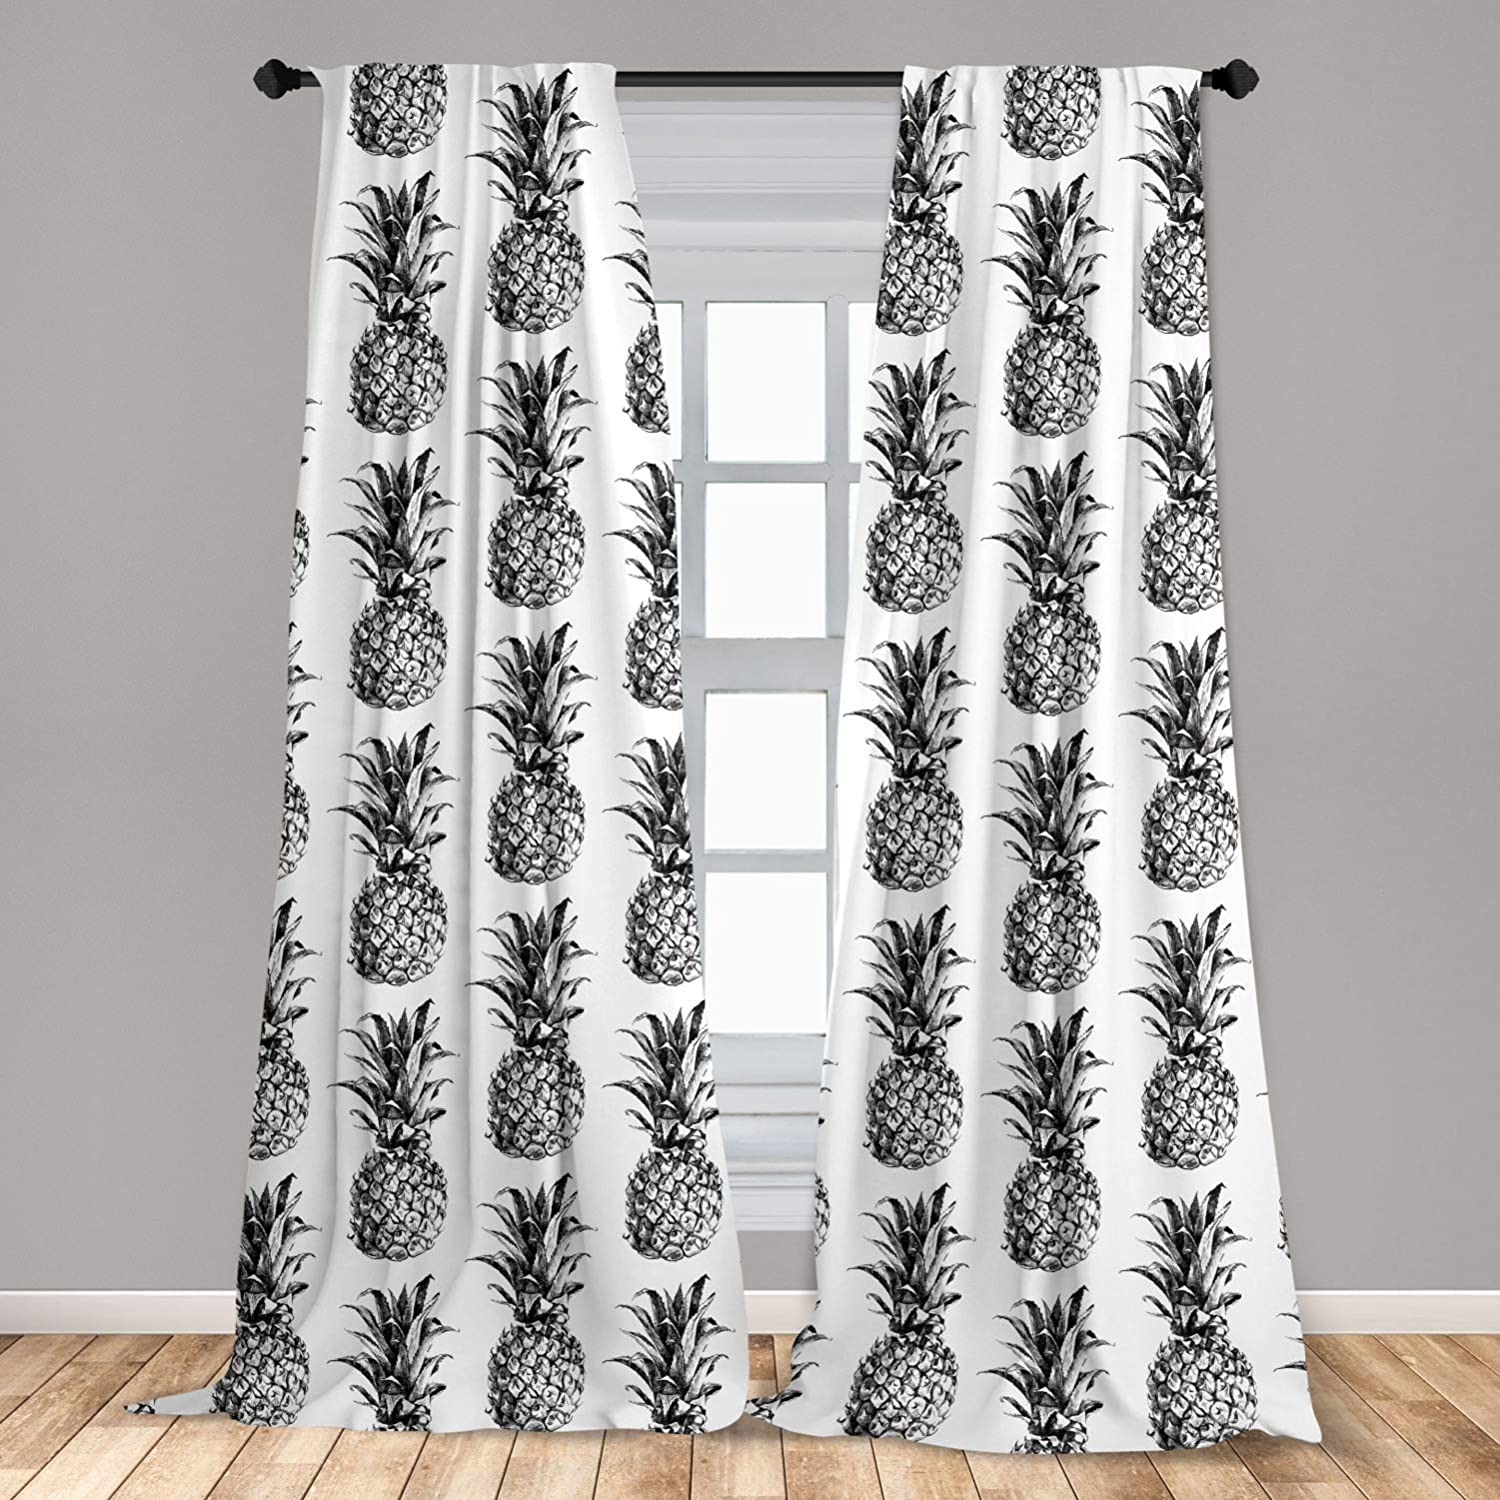 "Ambesonne Pineapple Curtains 2 Panel Set, Hand Drawn Tropical Theme Vintage Style Pineapple Fruit Pattern, Lightweight Window Treatment Living Room Bedroom Decor, 56"" x 84"", Black Gray"